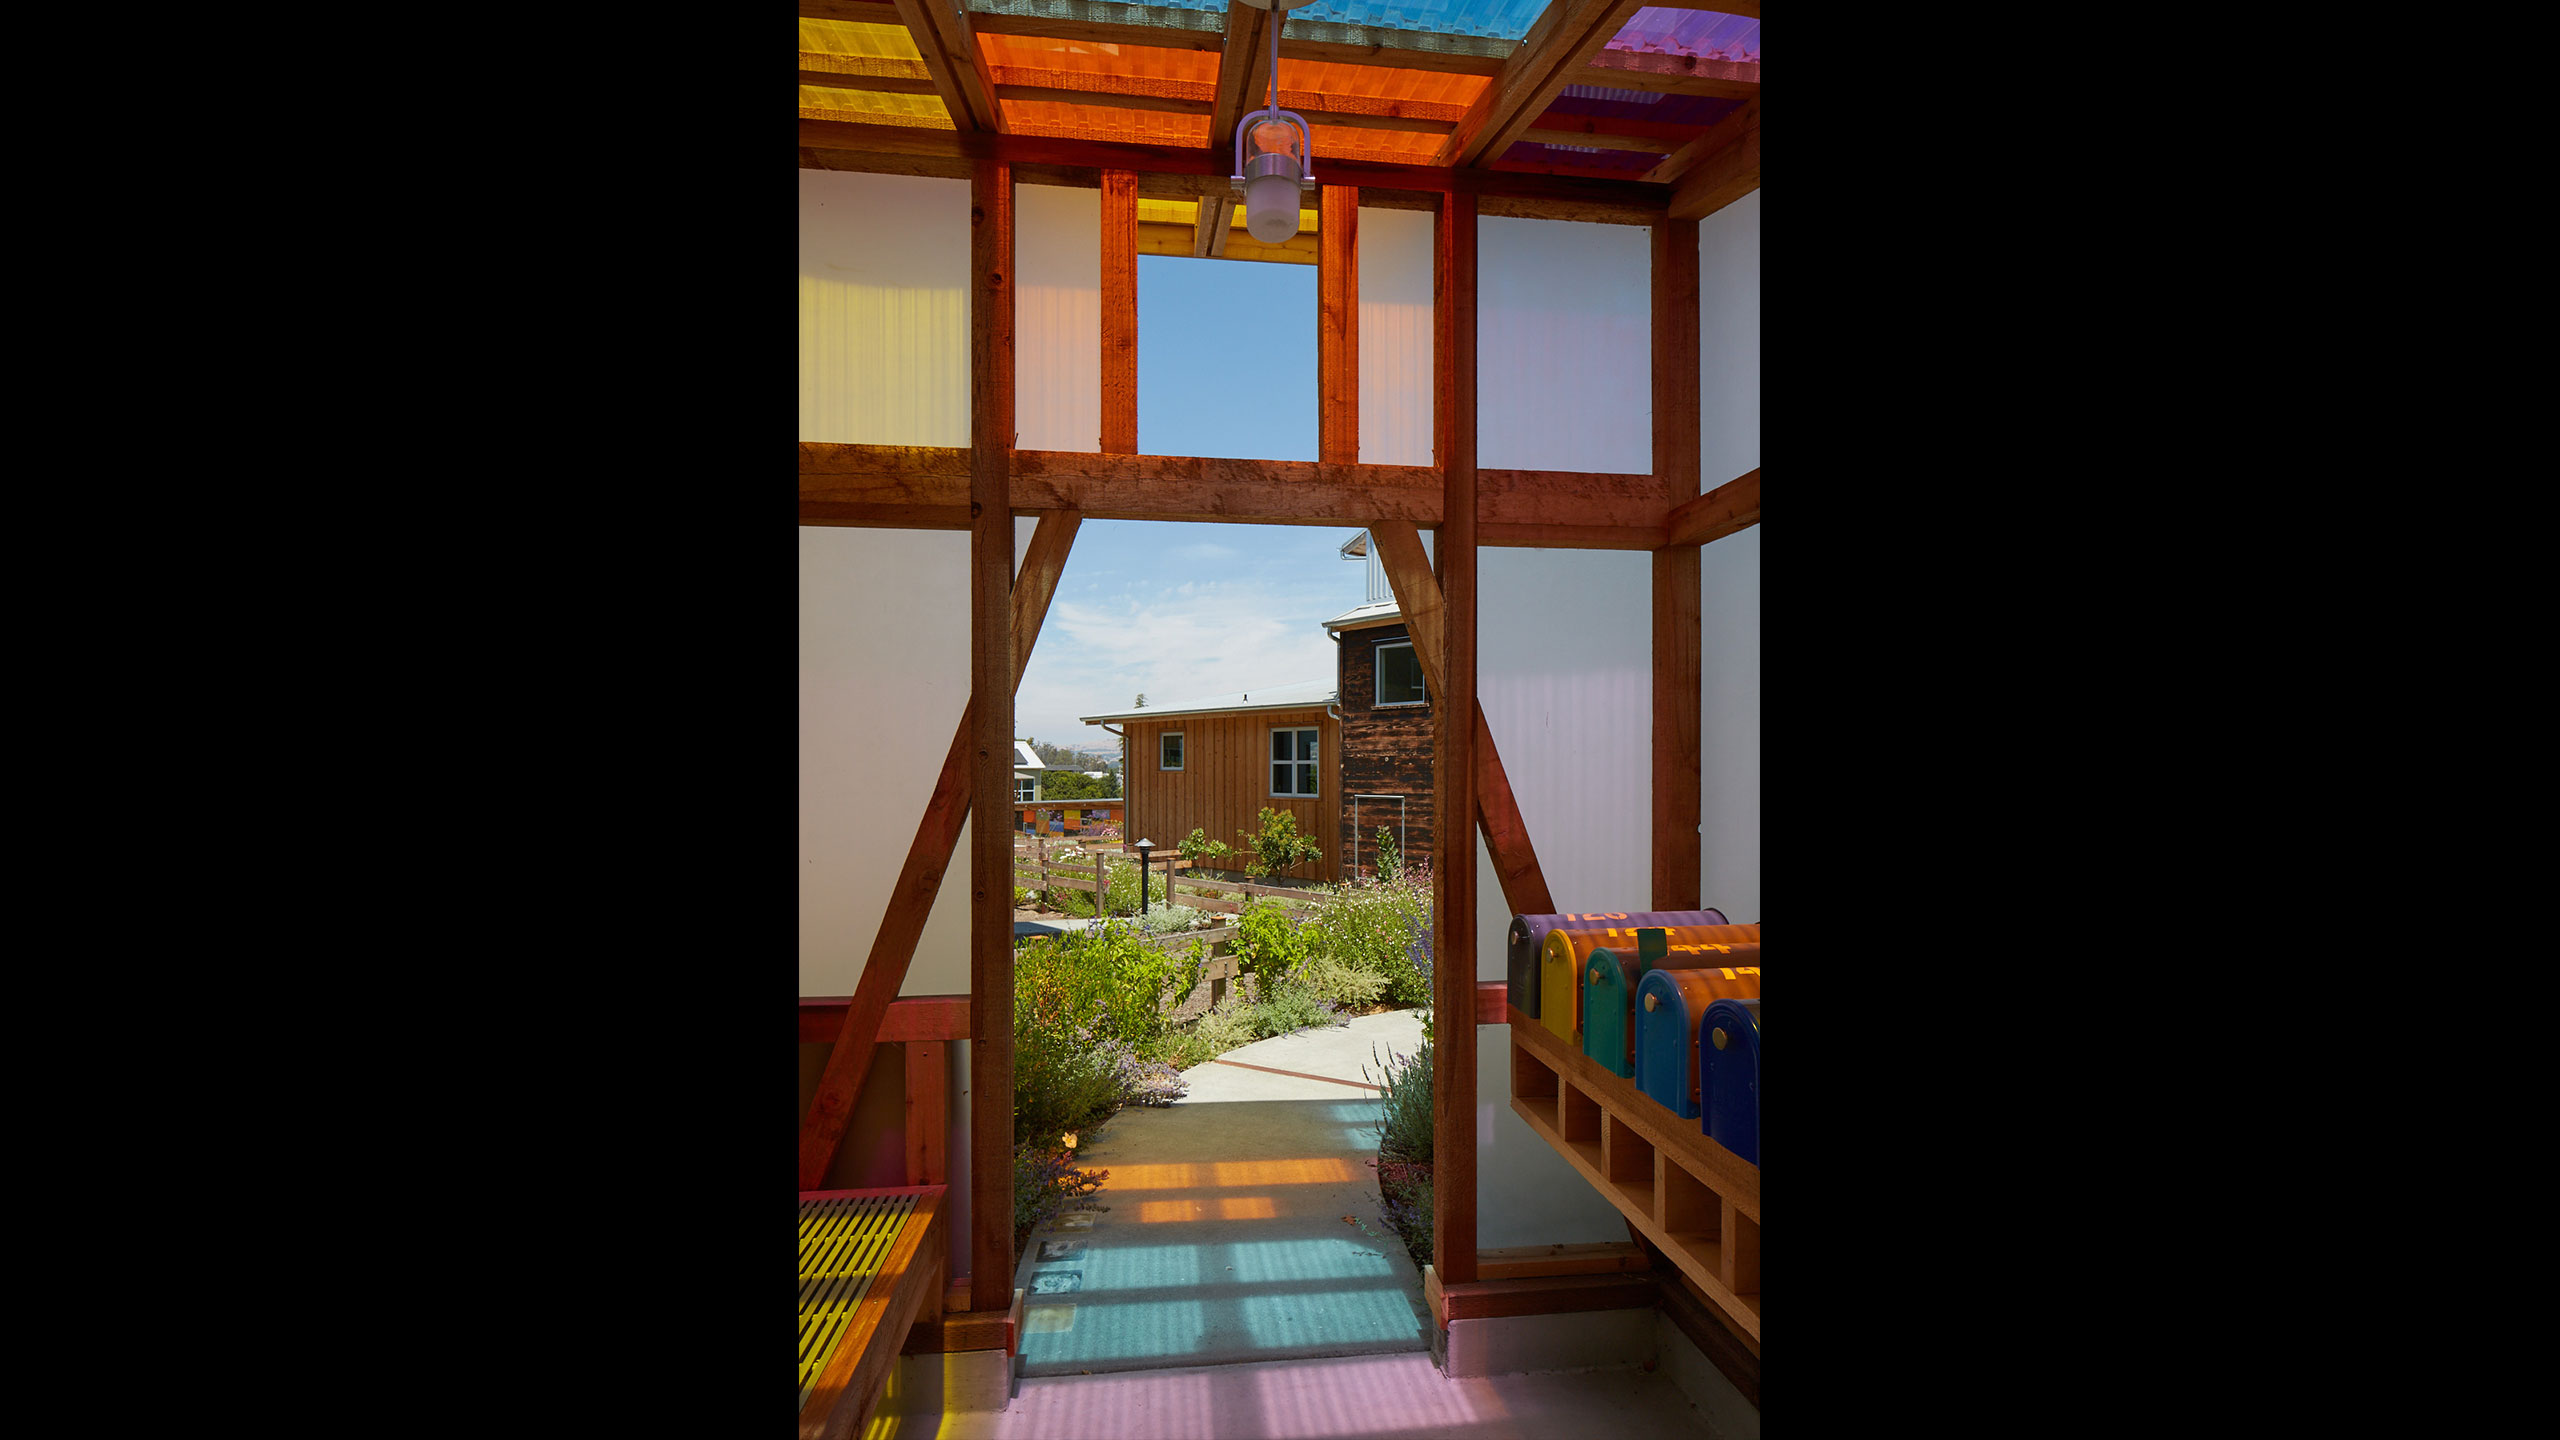 Sustainable-Architecture-Sonoma-County-Keller-Court-entrance-to-Courtyard-and-mailboxes